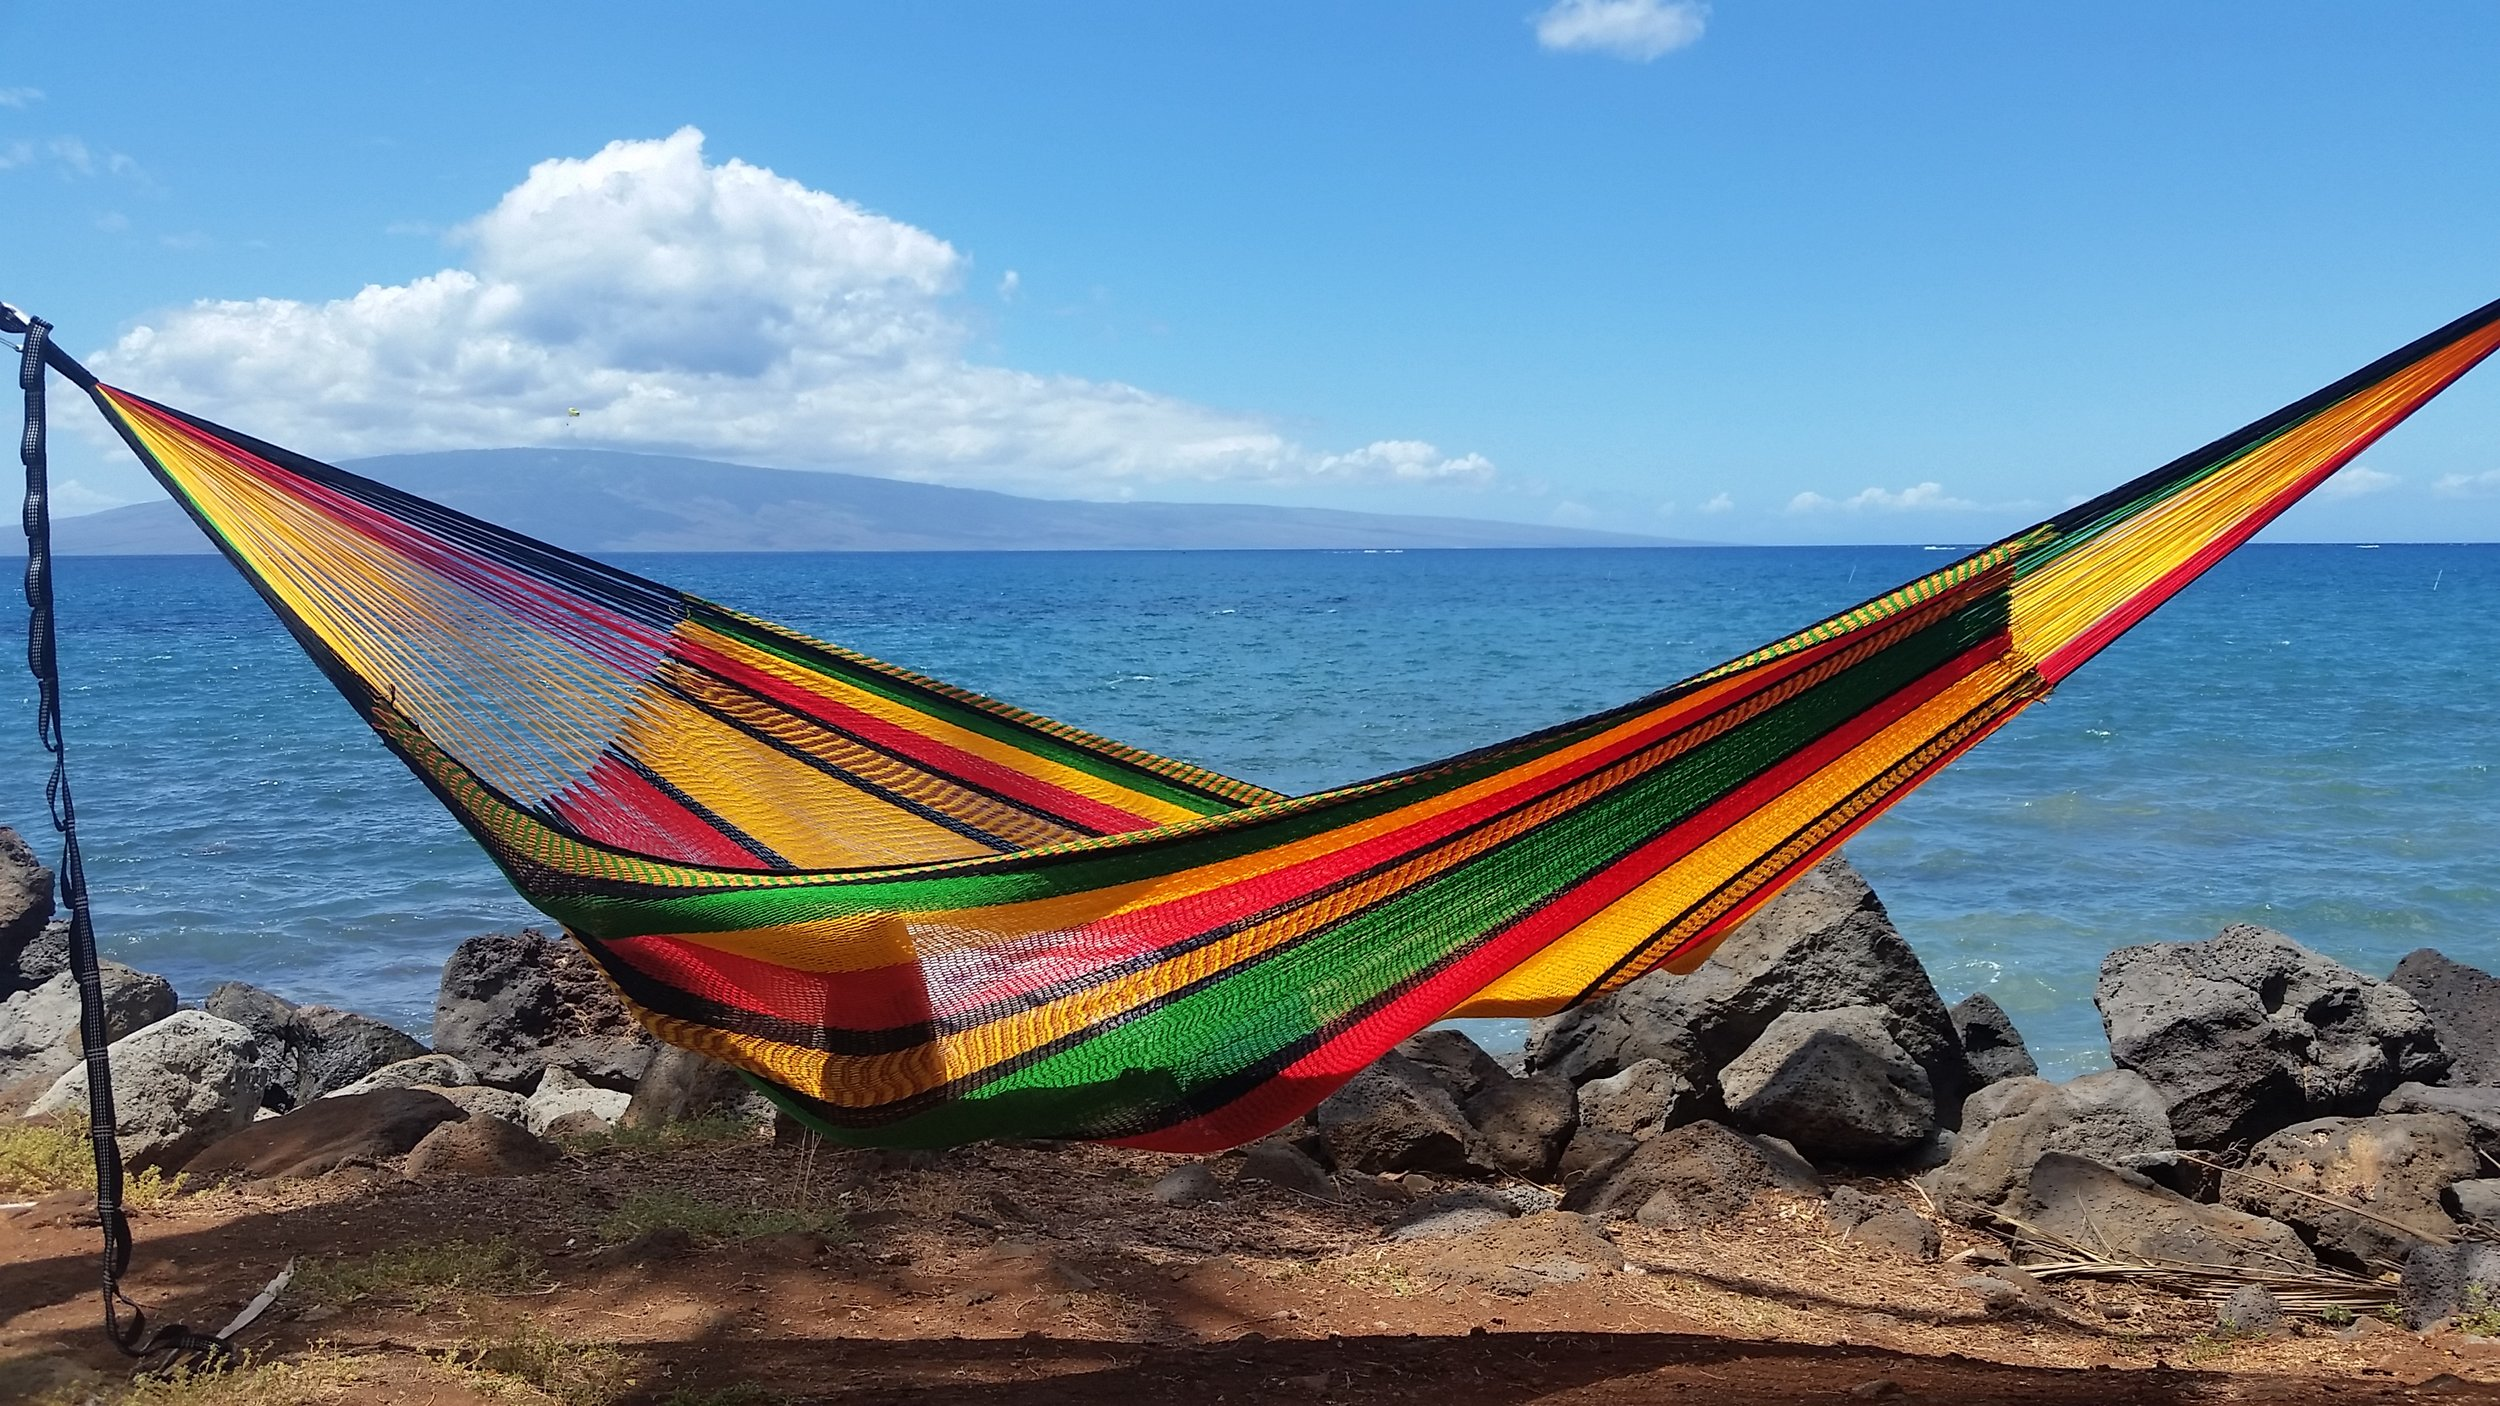 """(Contact us for colors available as they change daily)  Referred to as the """"Super Jumbo""""in size, this hammock is extra comfy for 1 and perfect for 2 people with a weight support of 500+ lb.. Ultra soft,hand woven triple acrylic hammocks can be left outdoors without worry of them losing color or shape.The Thai Laying Hammock weaving process takes up to 2 weeks to create. This weatherproof hammock is ideal for any outdoor area, great for the beach or lounging by the pool. Luxuriously soft and comfortable. Come rain or shine, you can leave it outdoors and the colors stay bright for many years. The Thai laying hammock is available in many unique designs and colors not seen in any other hammocks in the world. We label these hammocks after our favorite towns on Maui."""